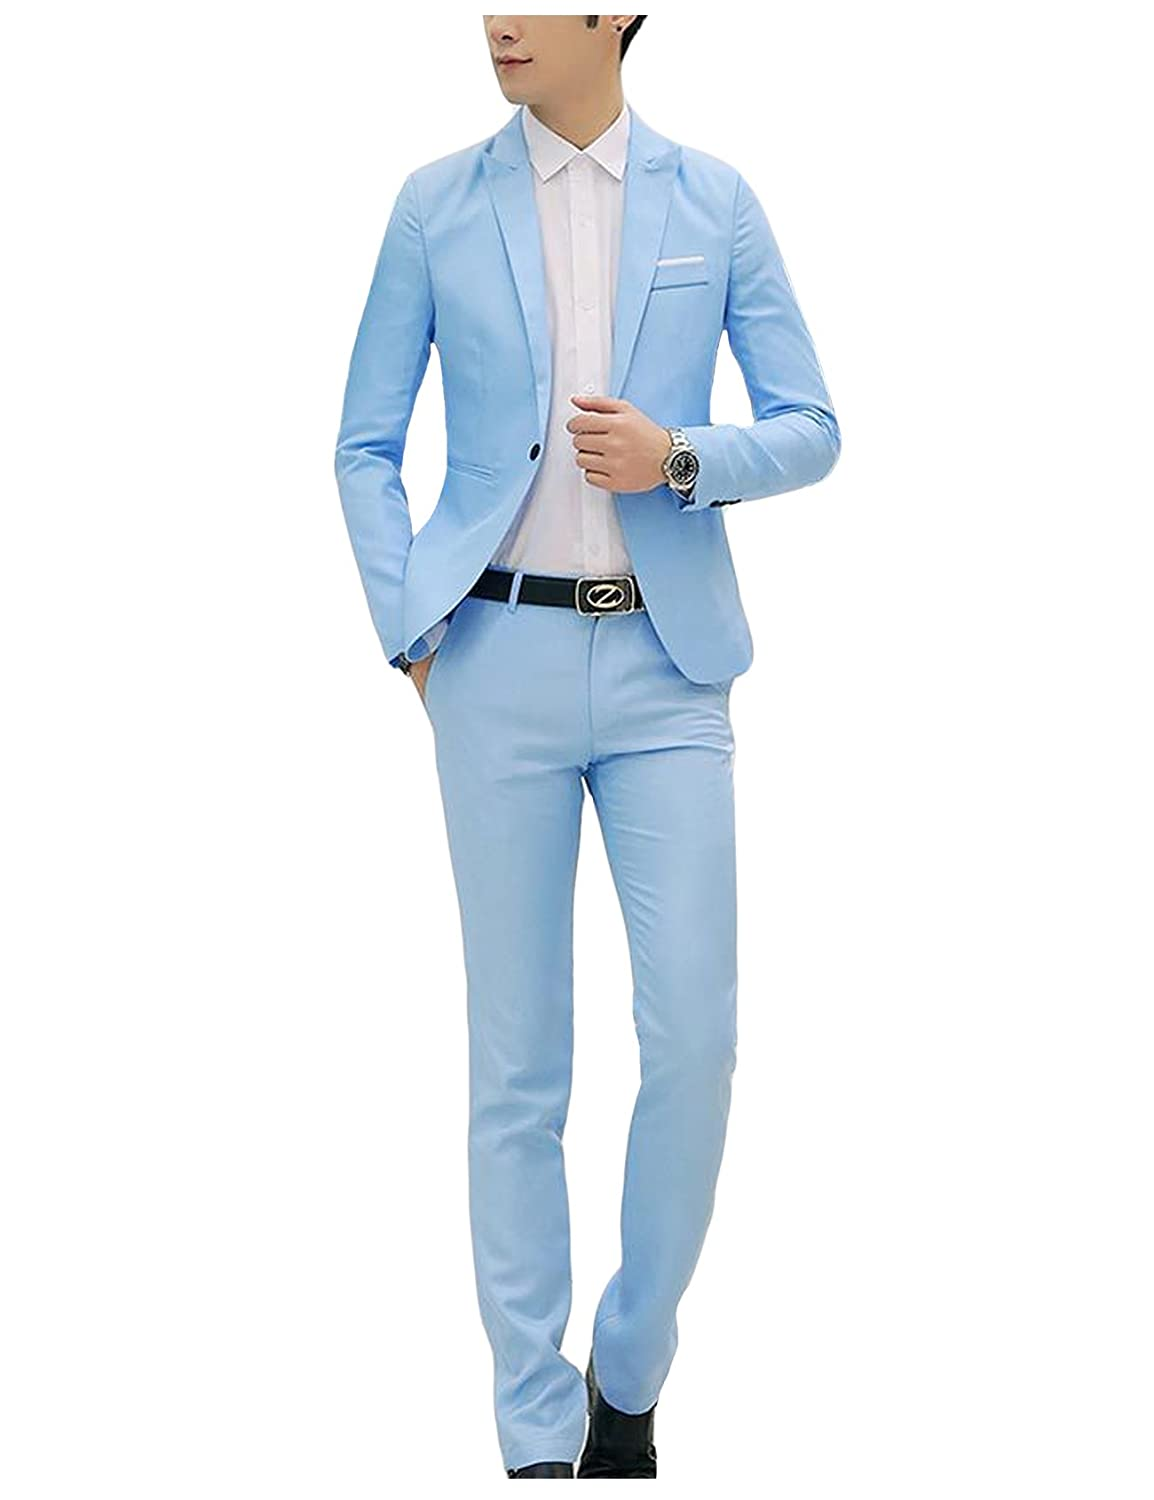 Bestgift Men's Solid Color Slim One-Button Tops Blazer and Long Pants 2-Pieces Suits BSGFNC0411